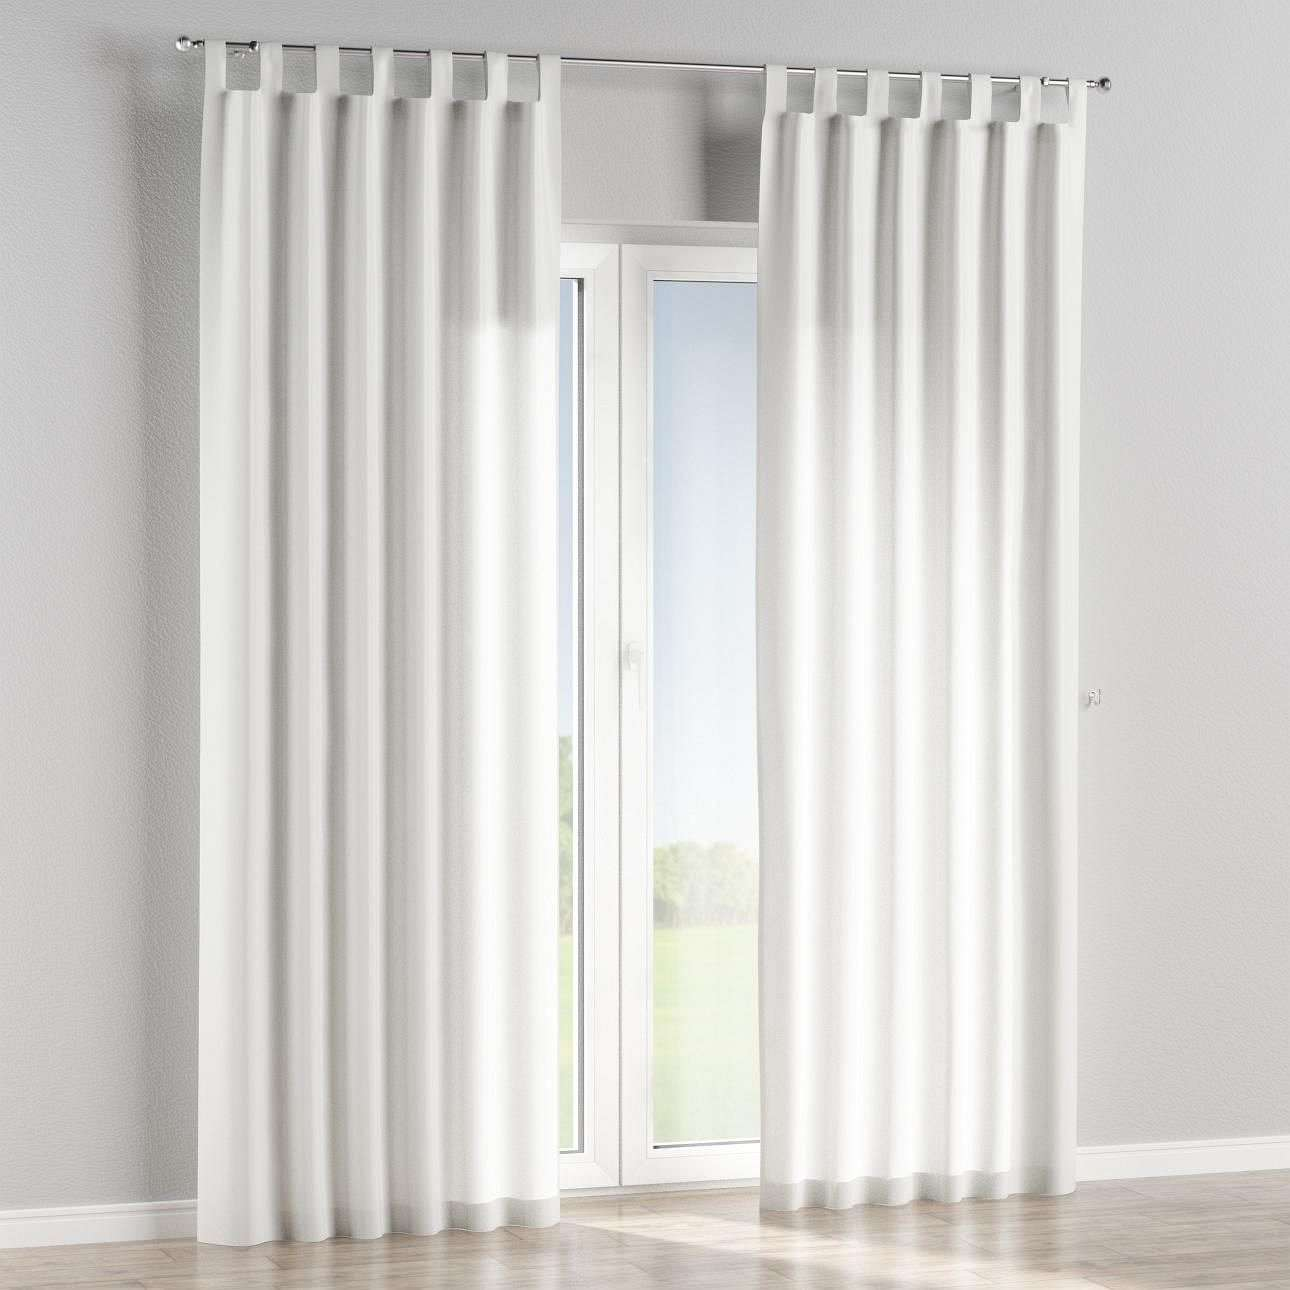 Tab top curtains in collection SALE, fabric: 137-56